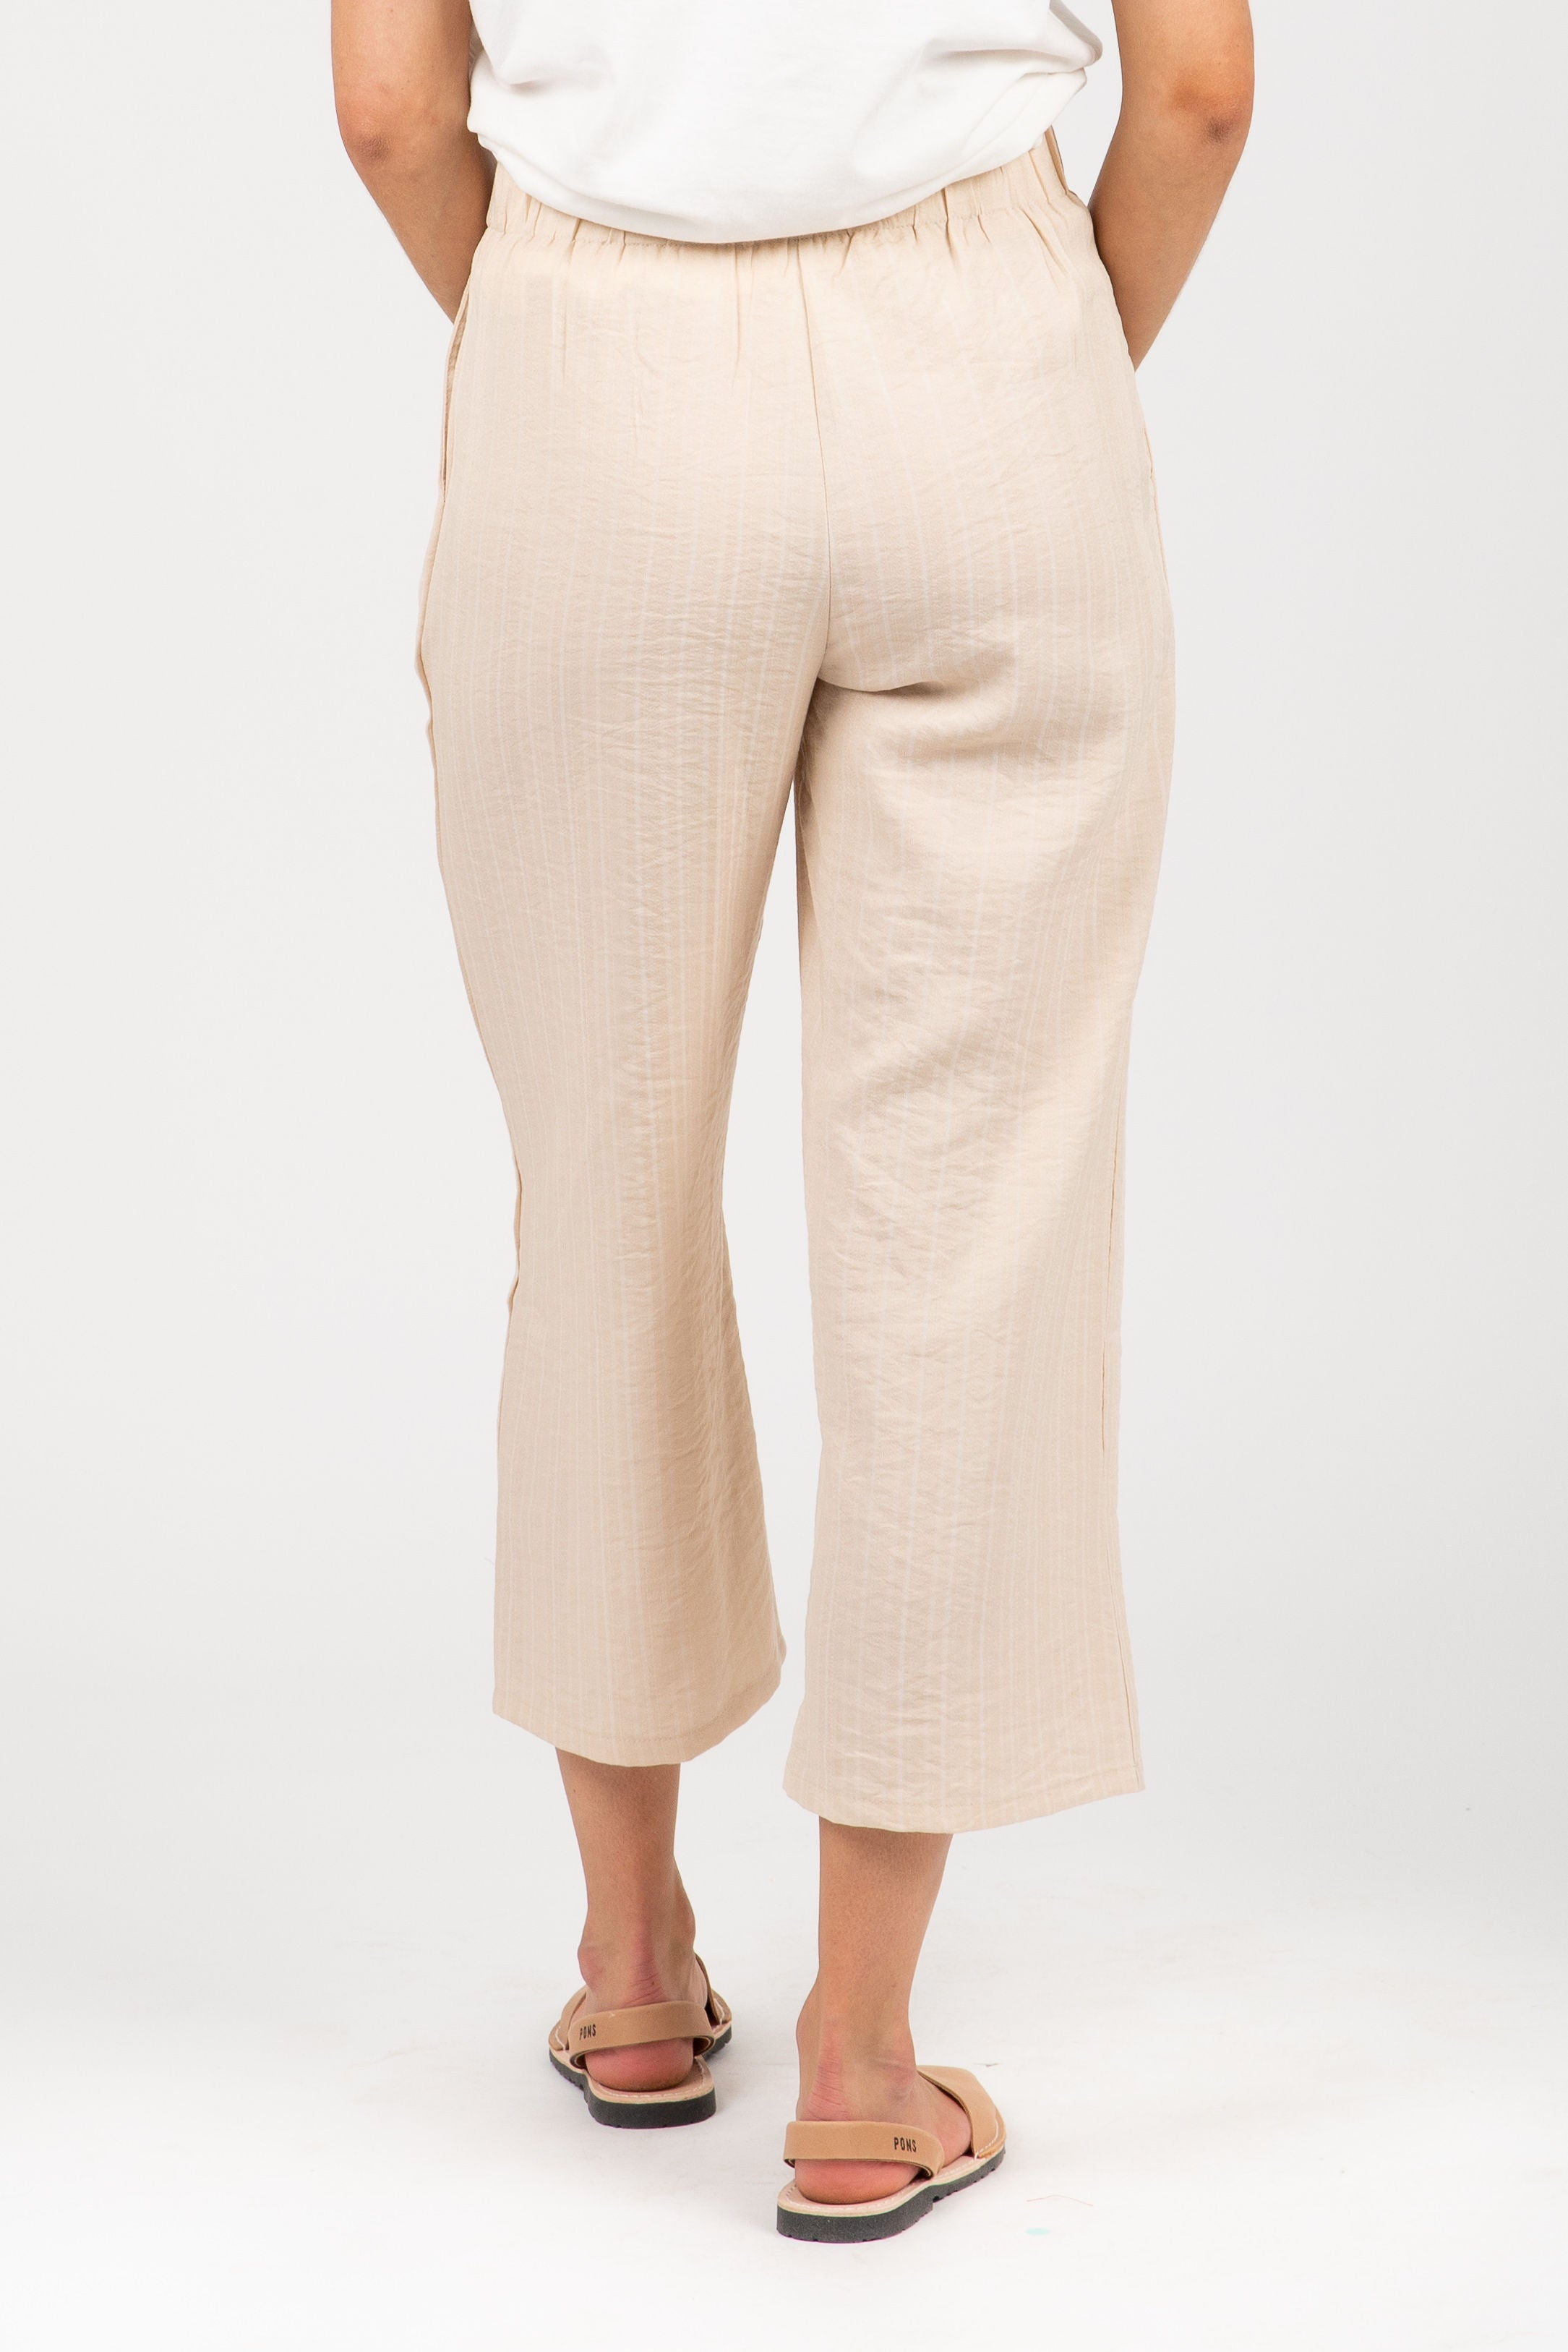 The Folly Button Wide Leg Trouser in Sand